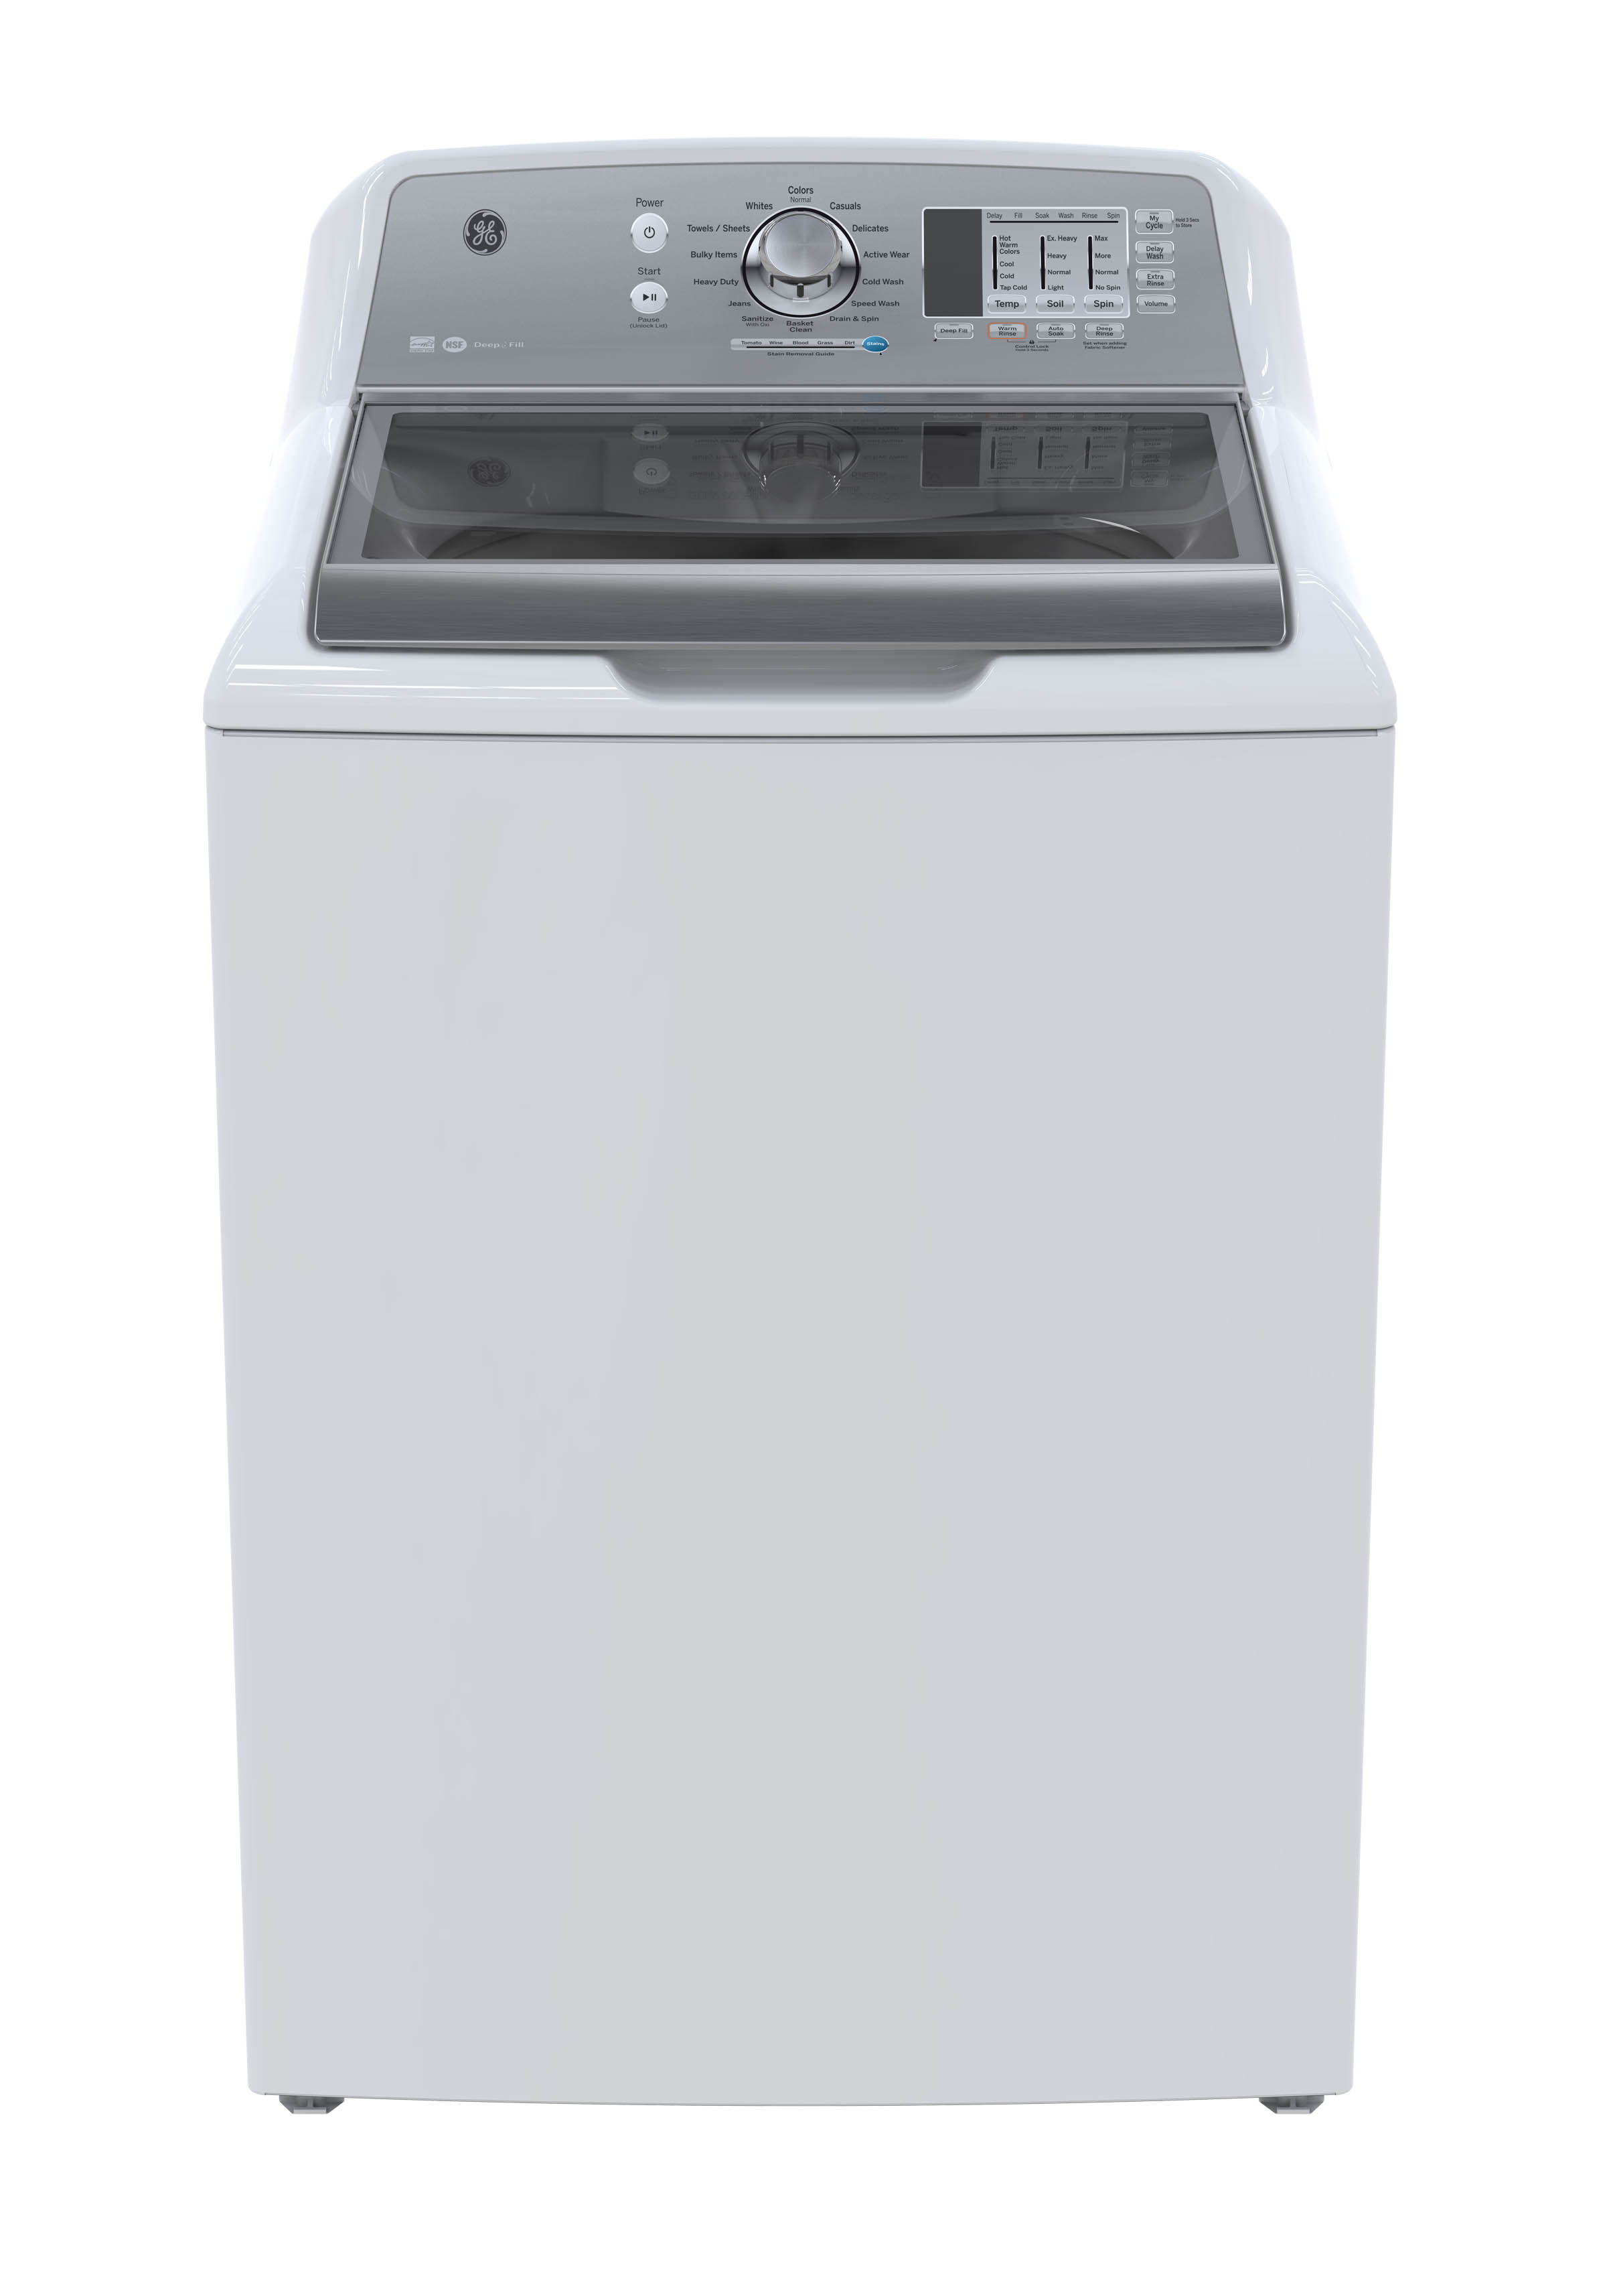 22111 – washer – GTW680BMMWS – front